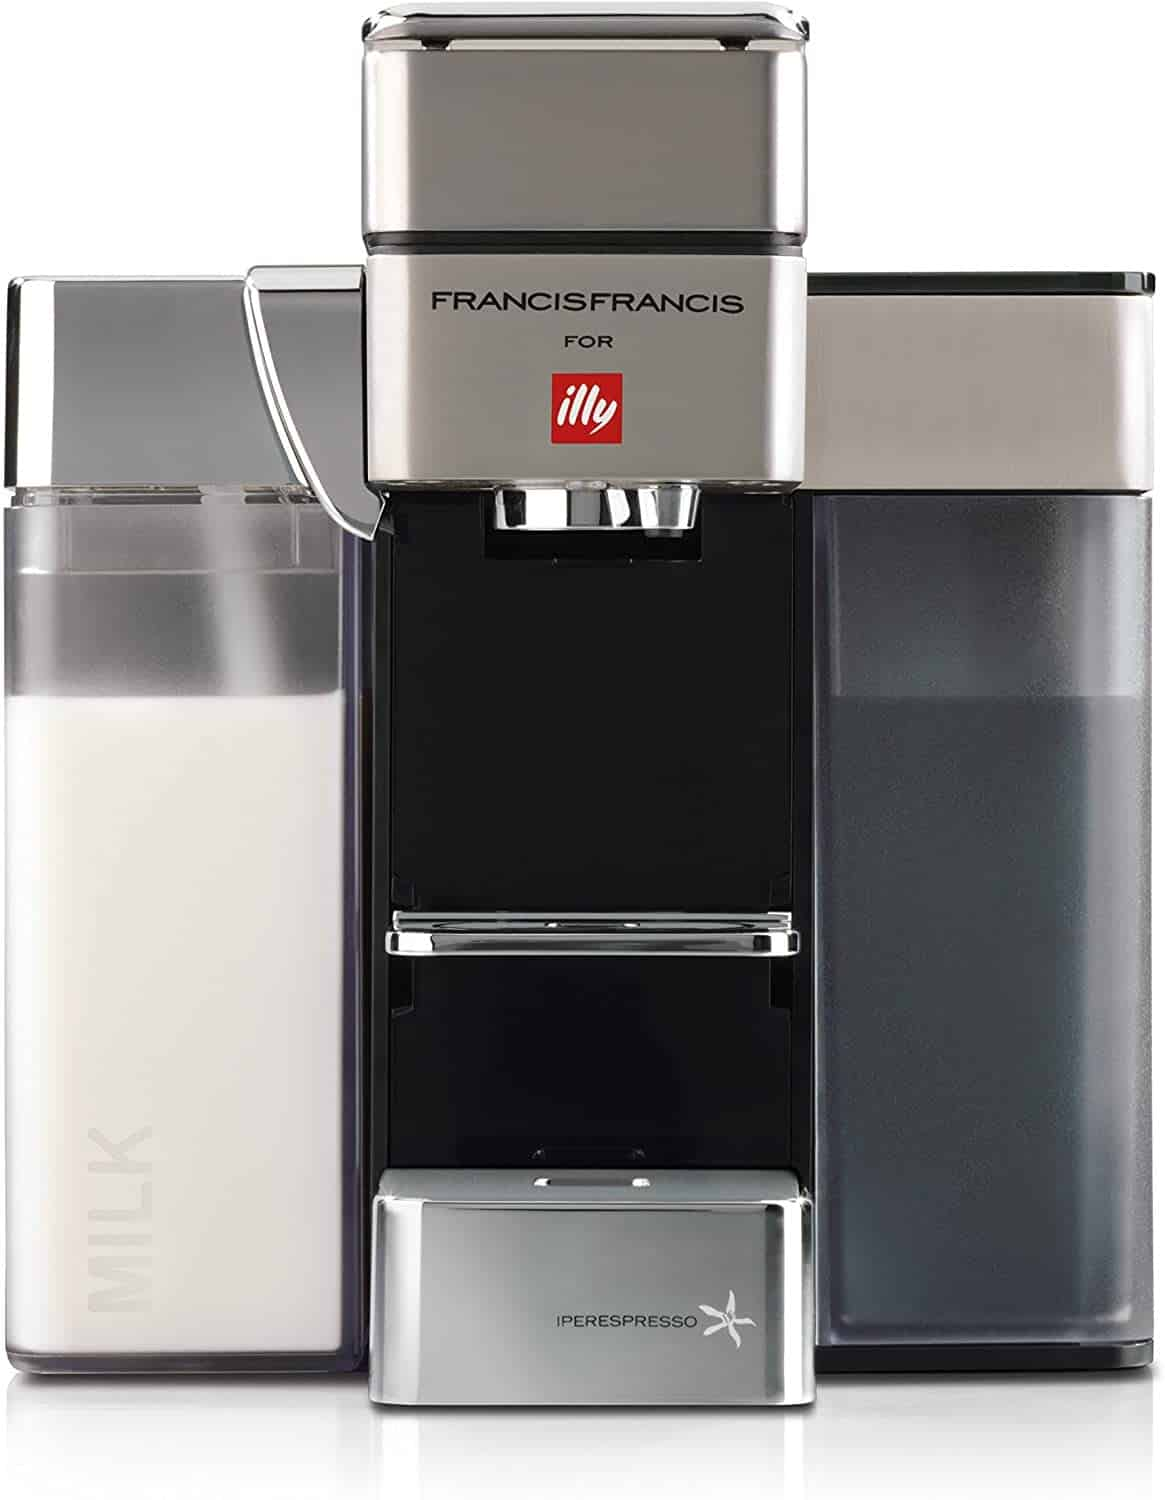 illy Y5 milk espresso coffee